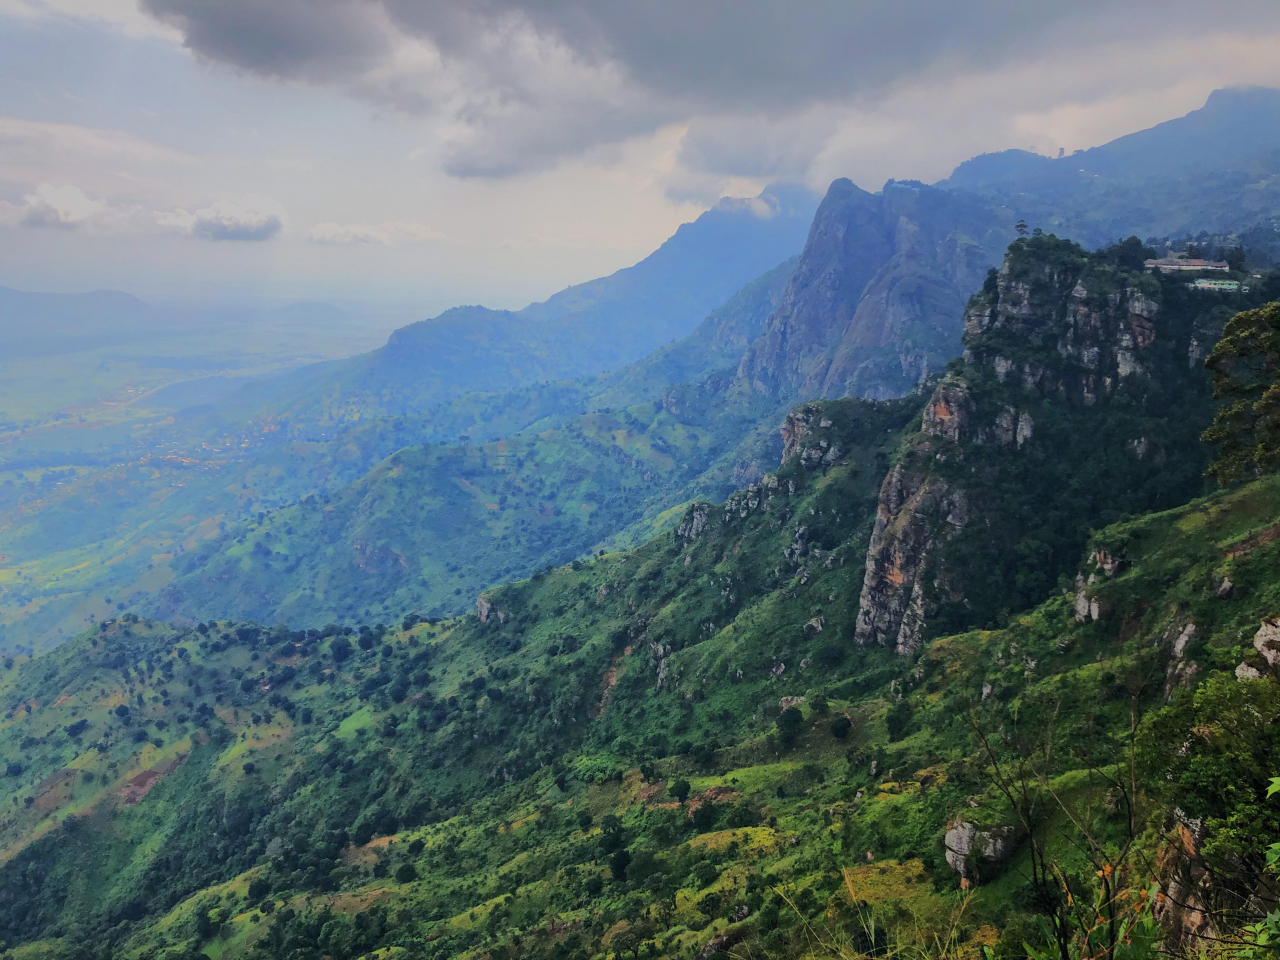 A picture from Usambara Mountains by Natalie Chwalek